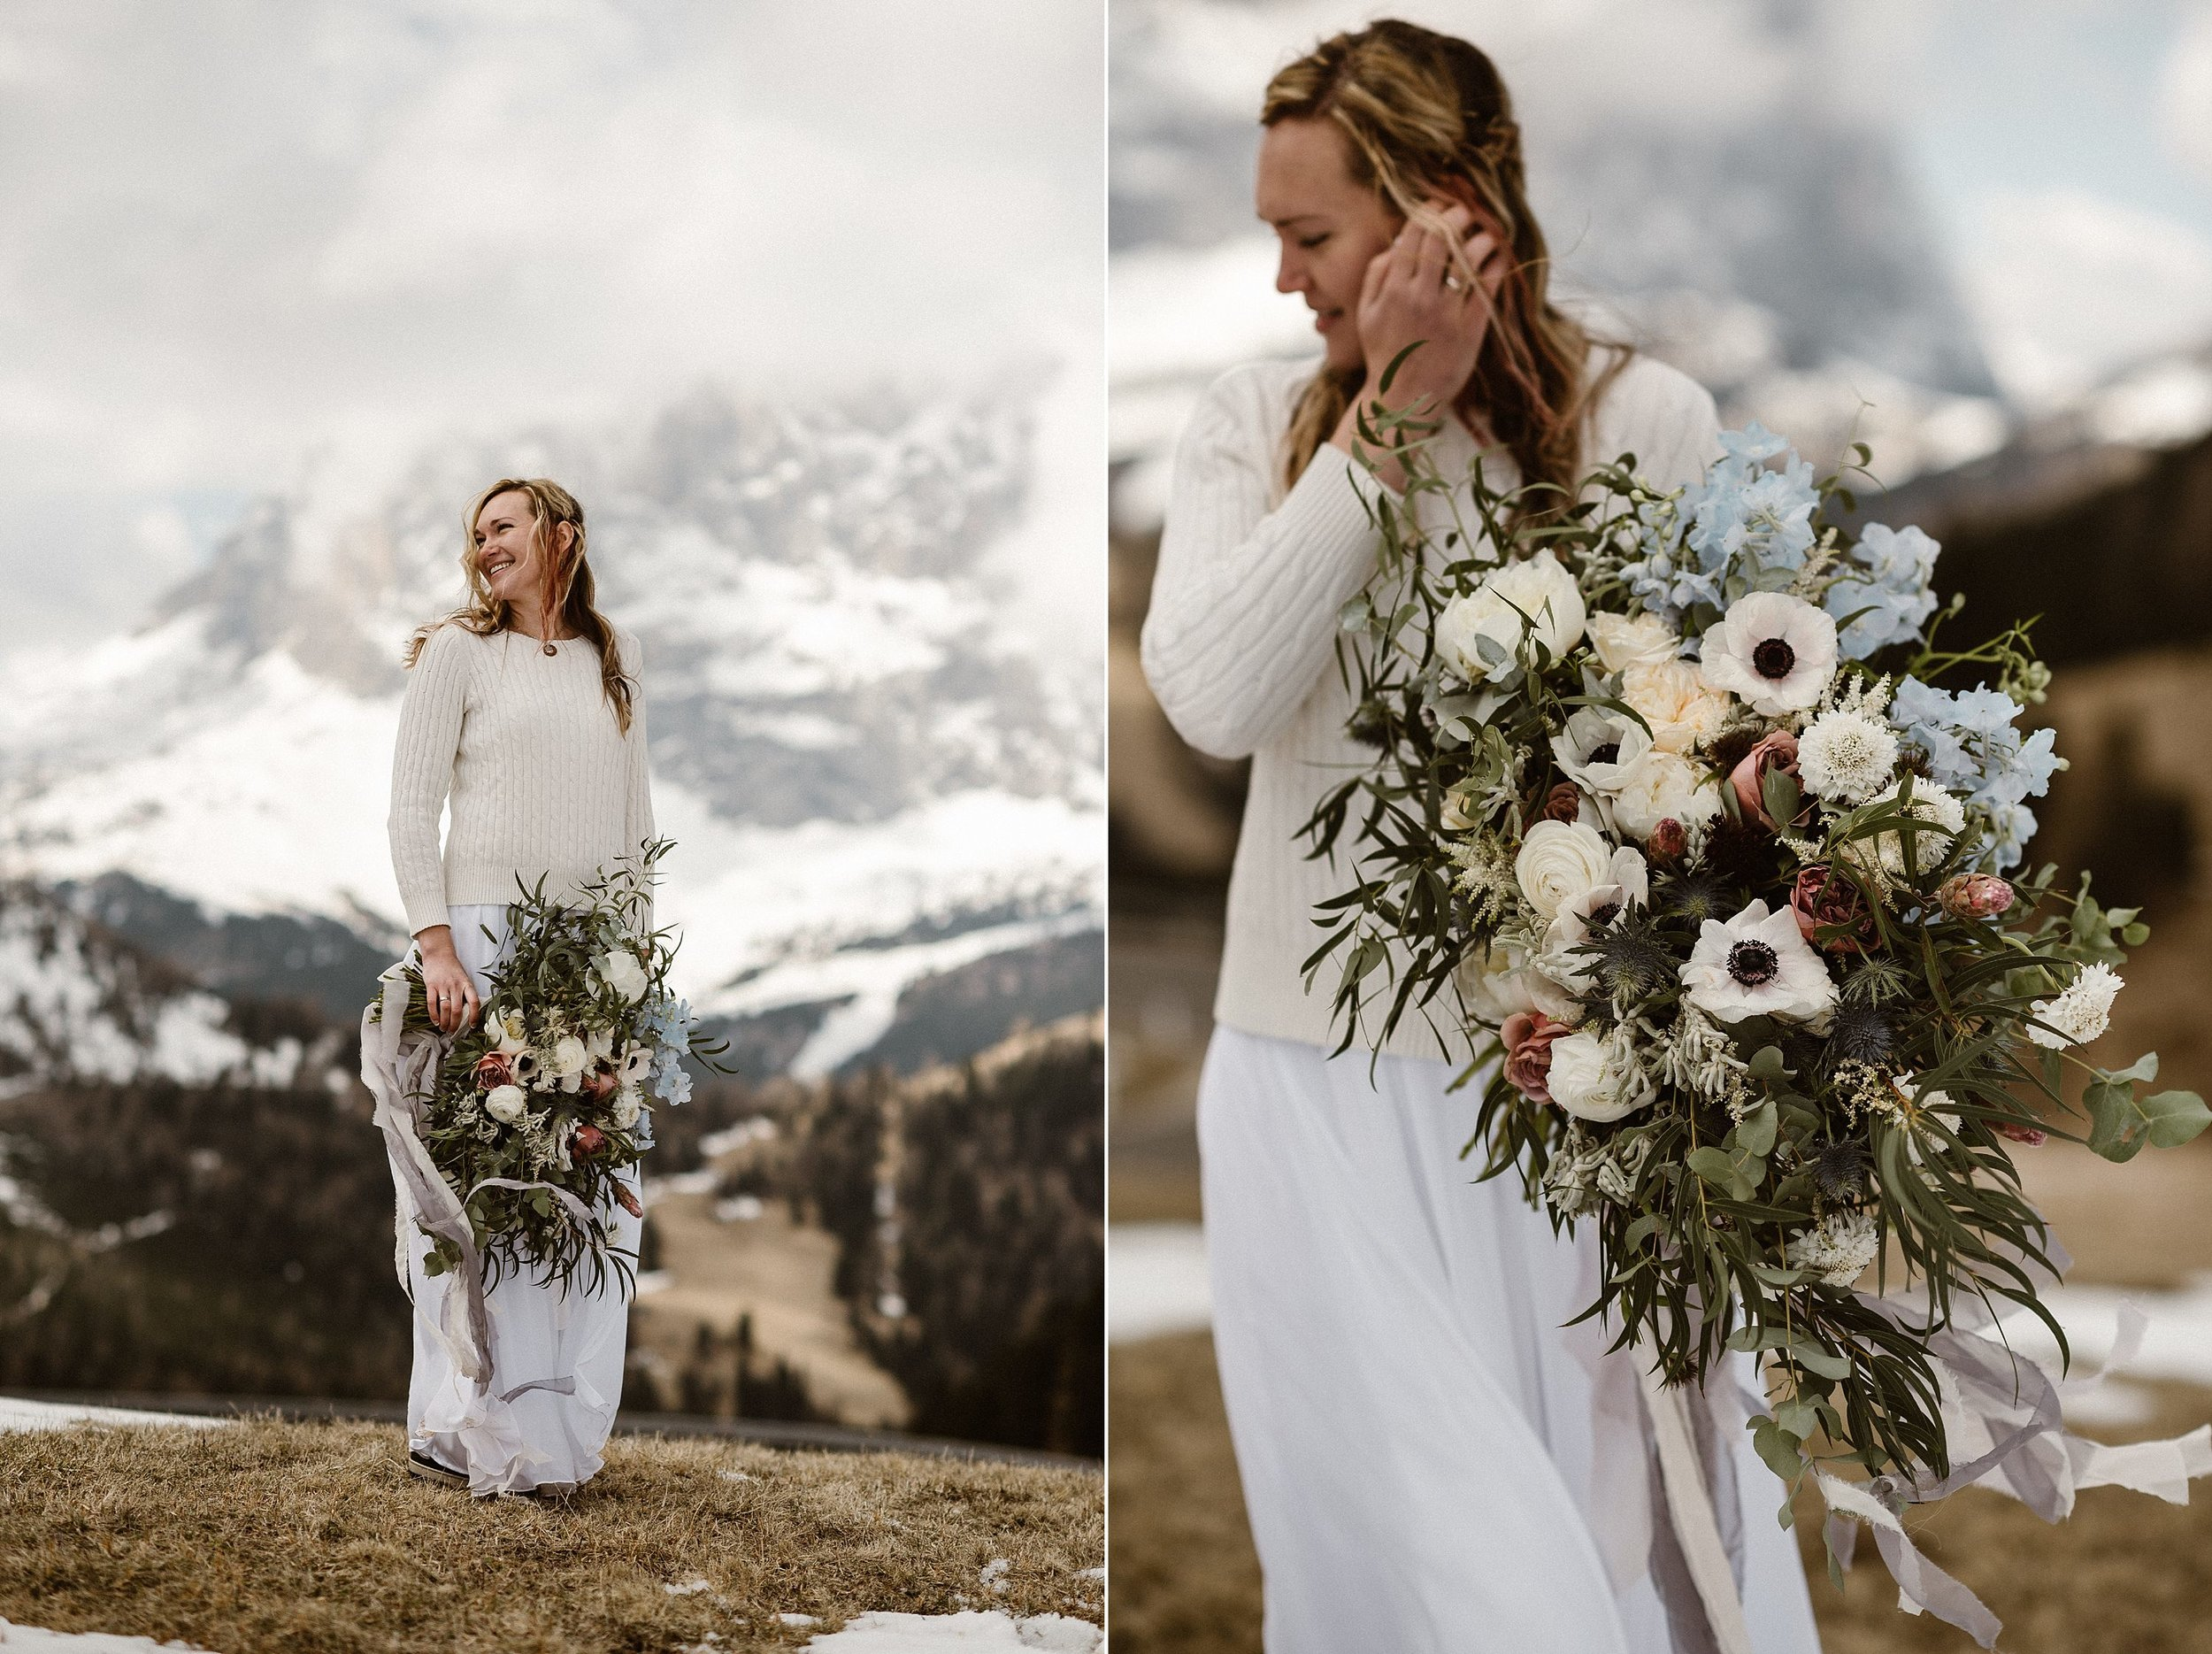 While keeping much of their intimate elopement simple, these brides did opt for an oversized spring flower bouquet brilliantly designed by Il Profumo dei fiori flower design in Northern Italy. Photos by adventurous wedding photographer Maddie Mae.